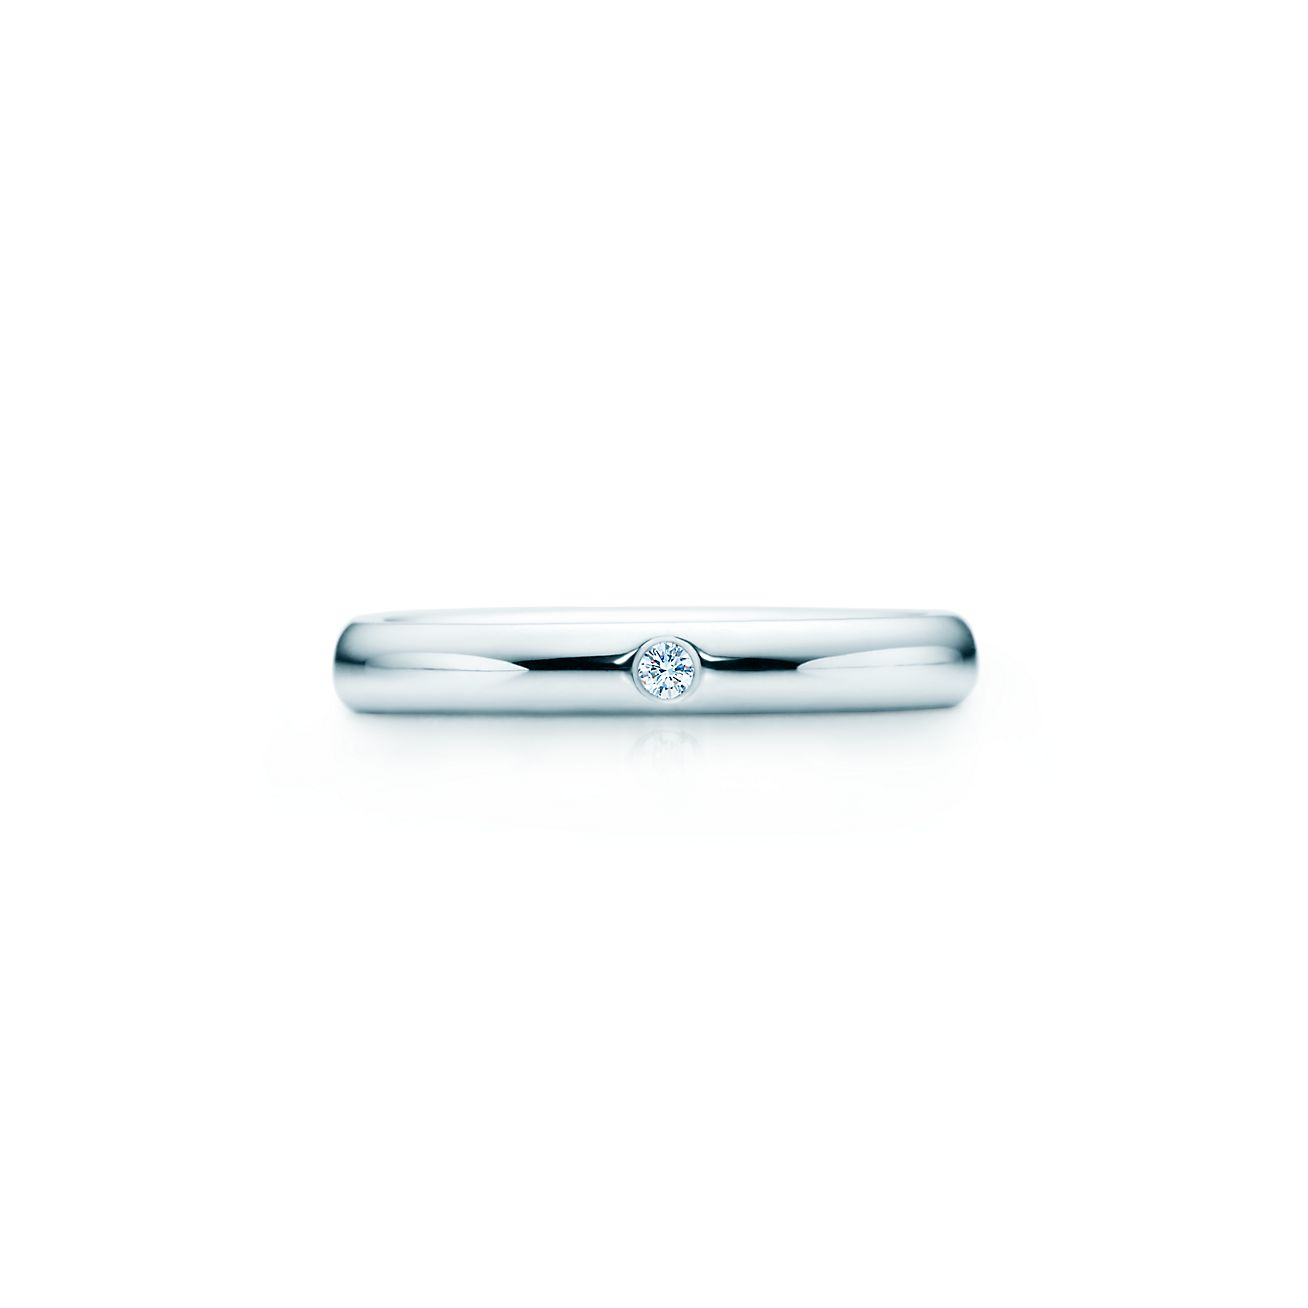 Elsa Peretti® band ring with a diamond in platinum.  48ad6d632f84